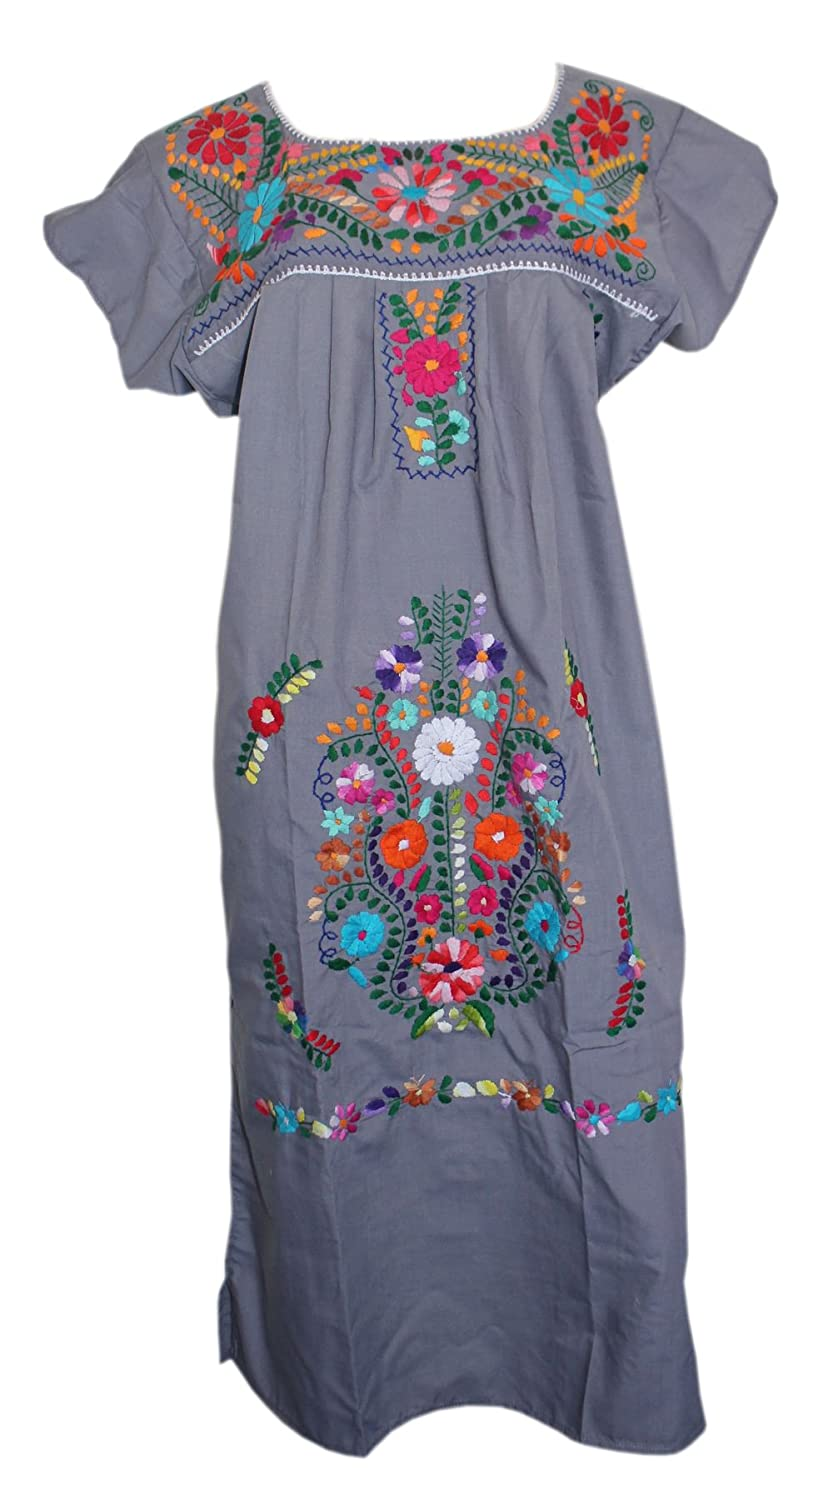 Gray Embroidered Mexican Peasant Hippie Boho Dress by Lily Cruz